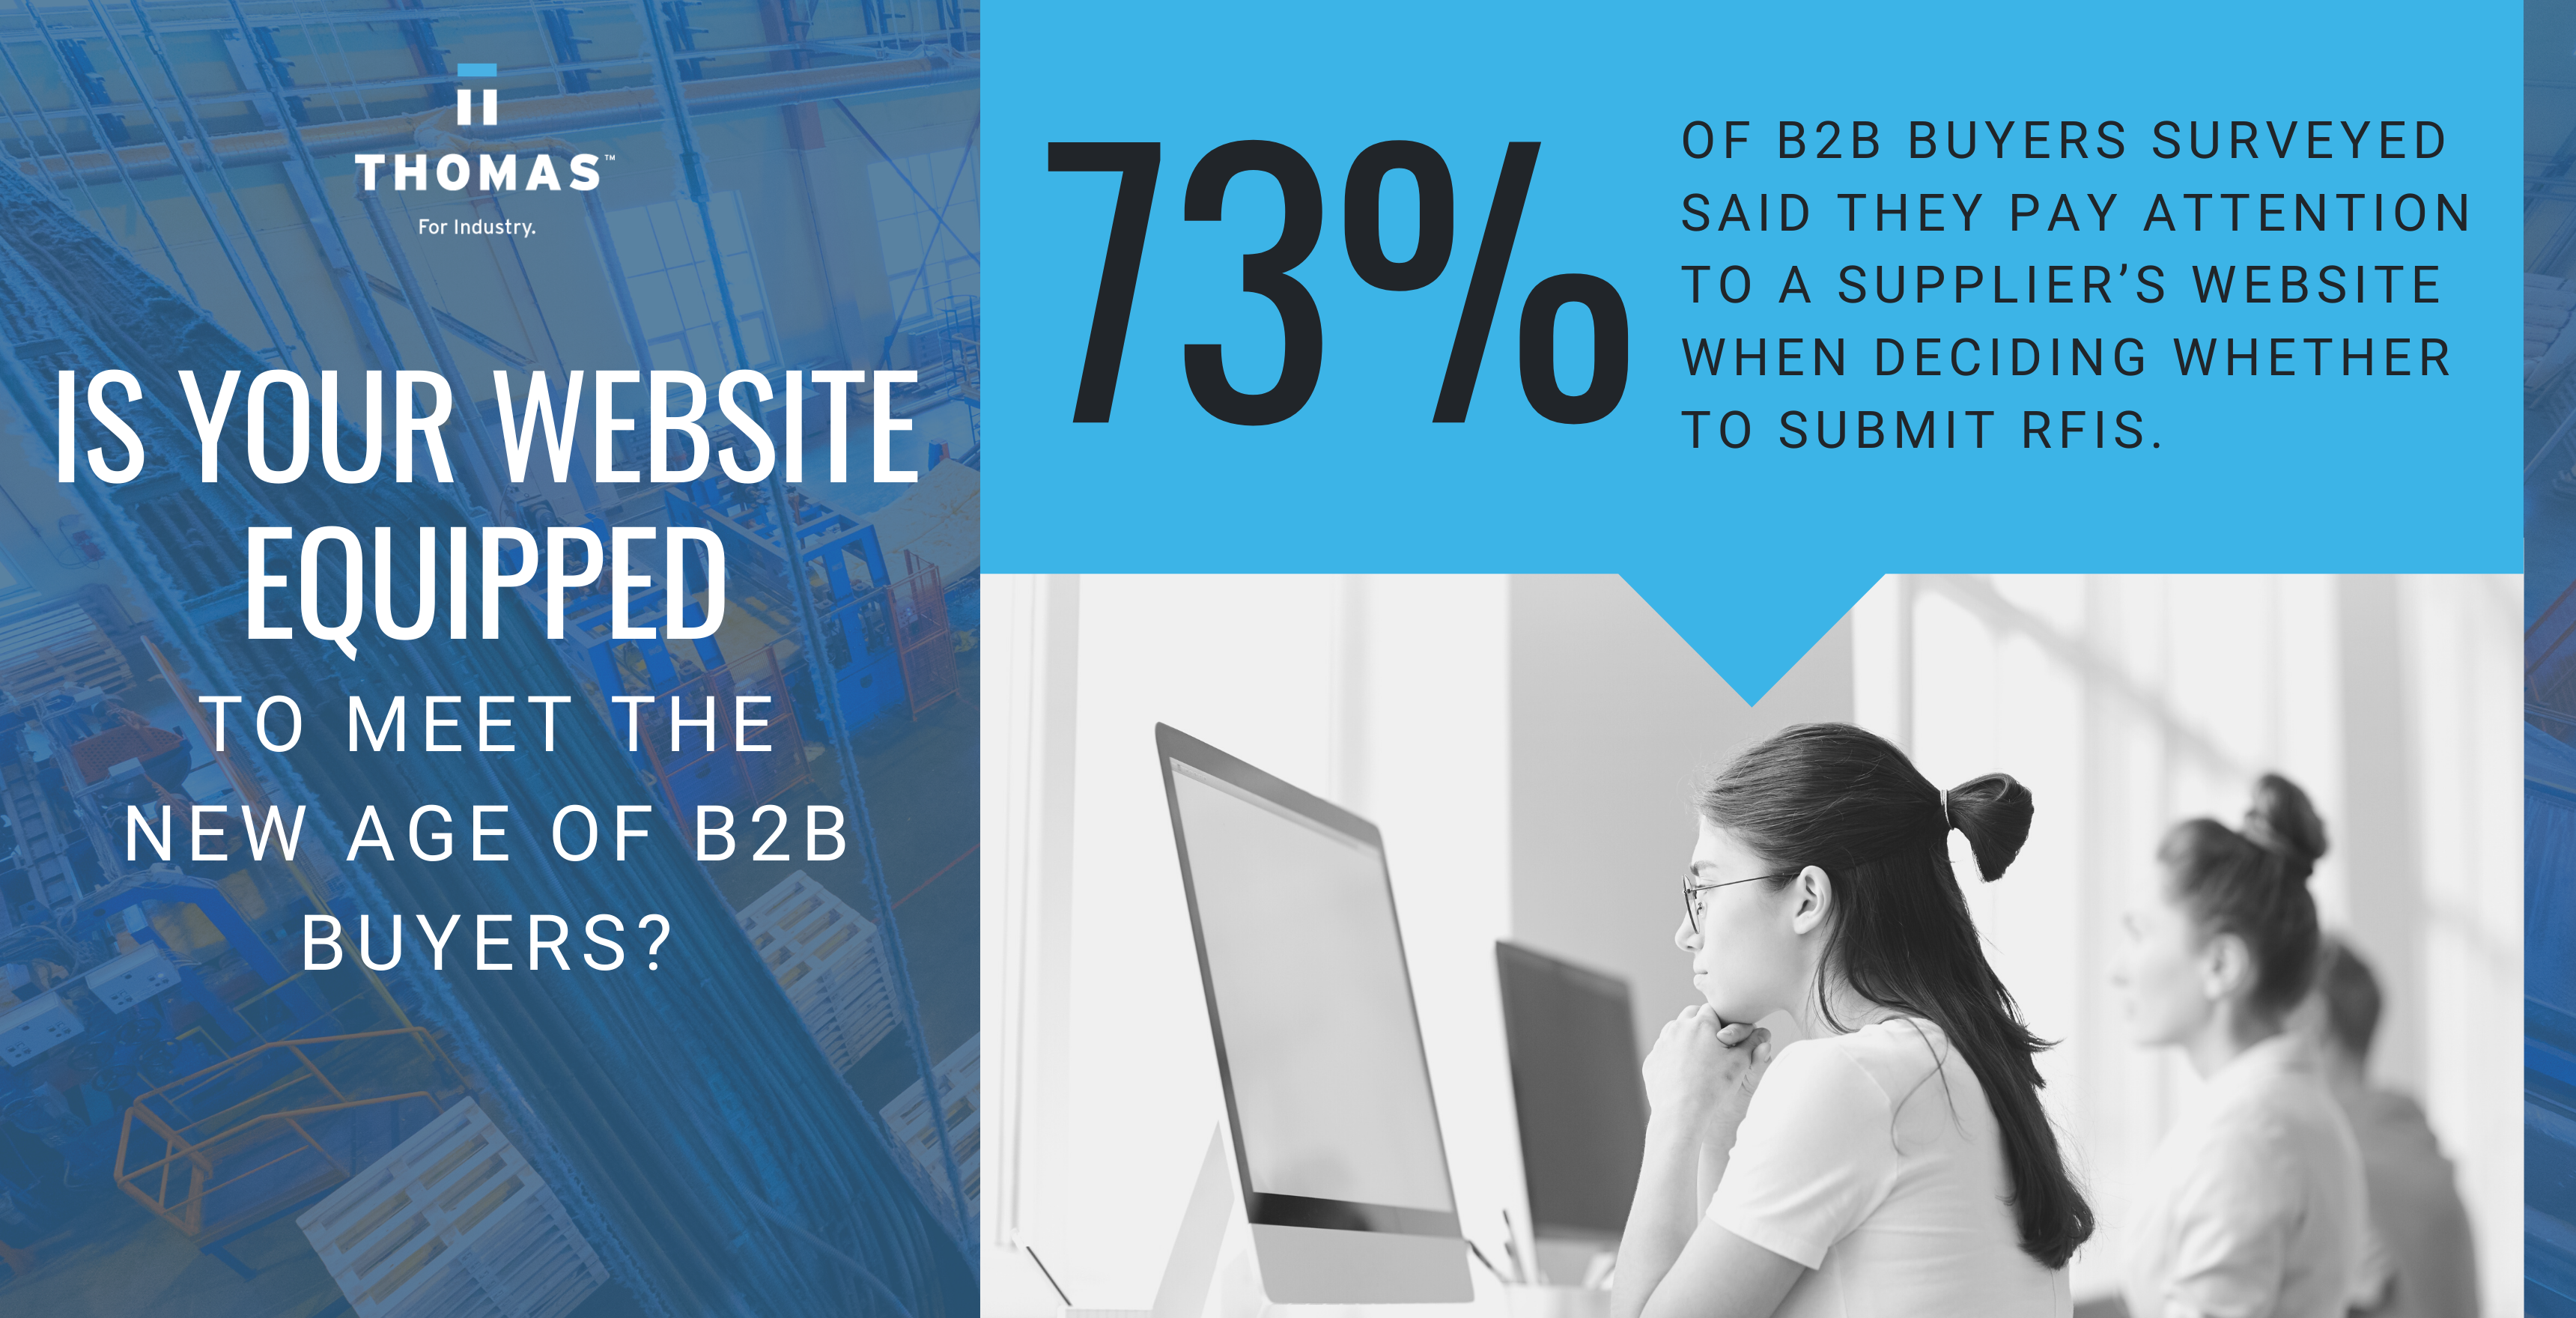 B2B Buyer Stats Infographic - Hire industrial marketing agency vs freelancer